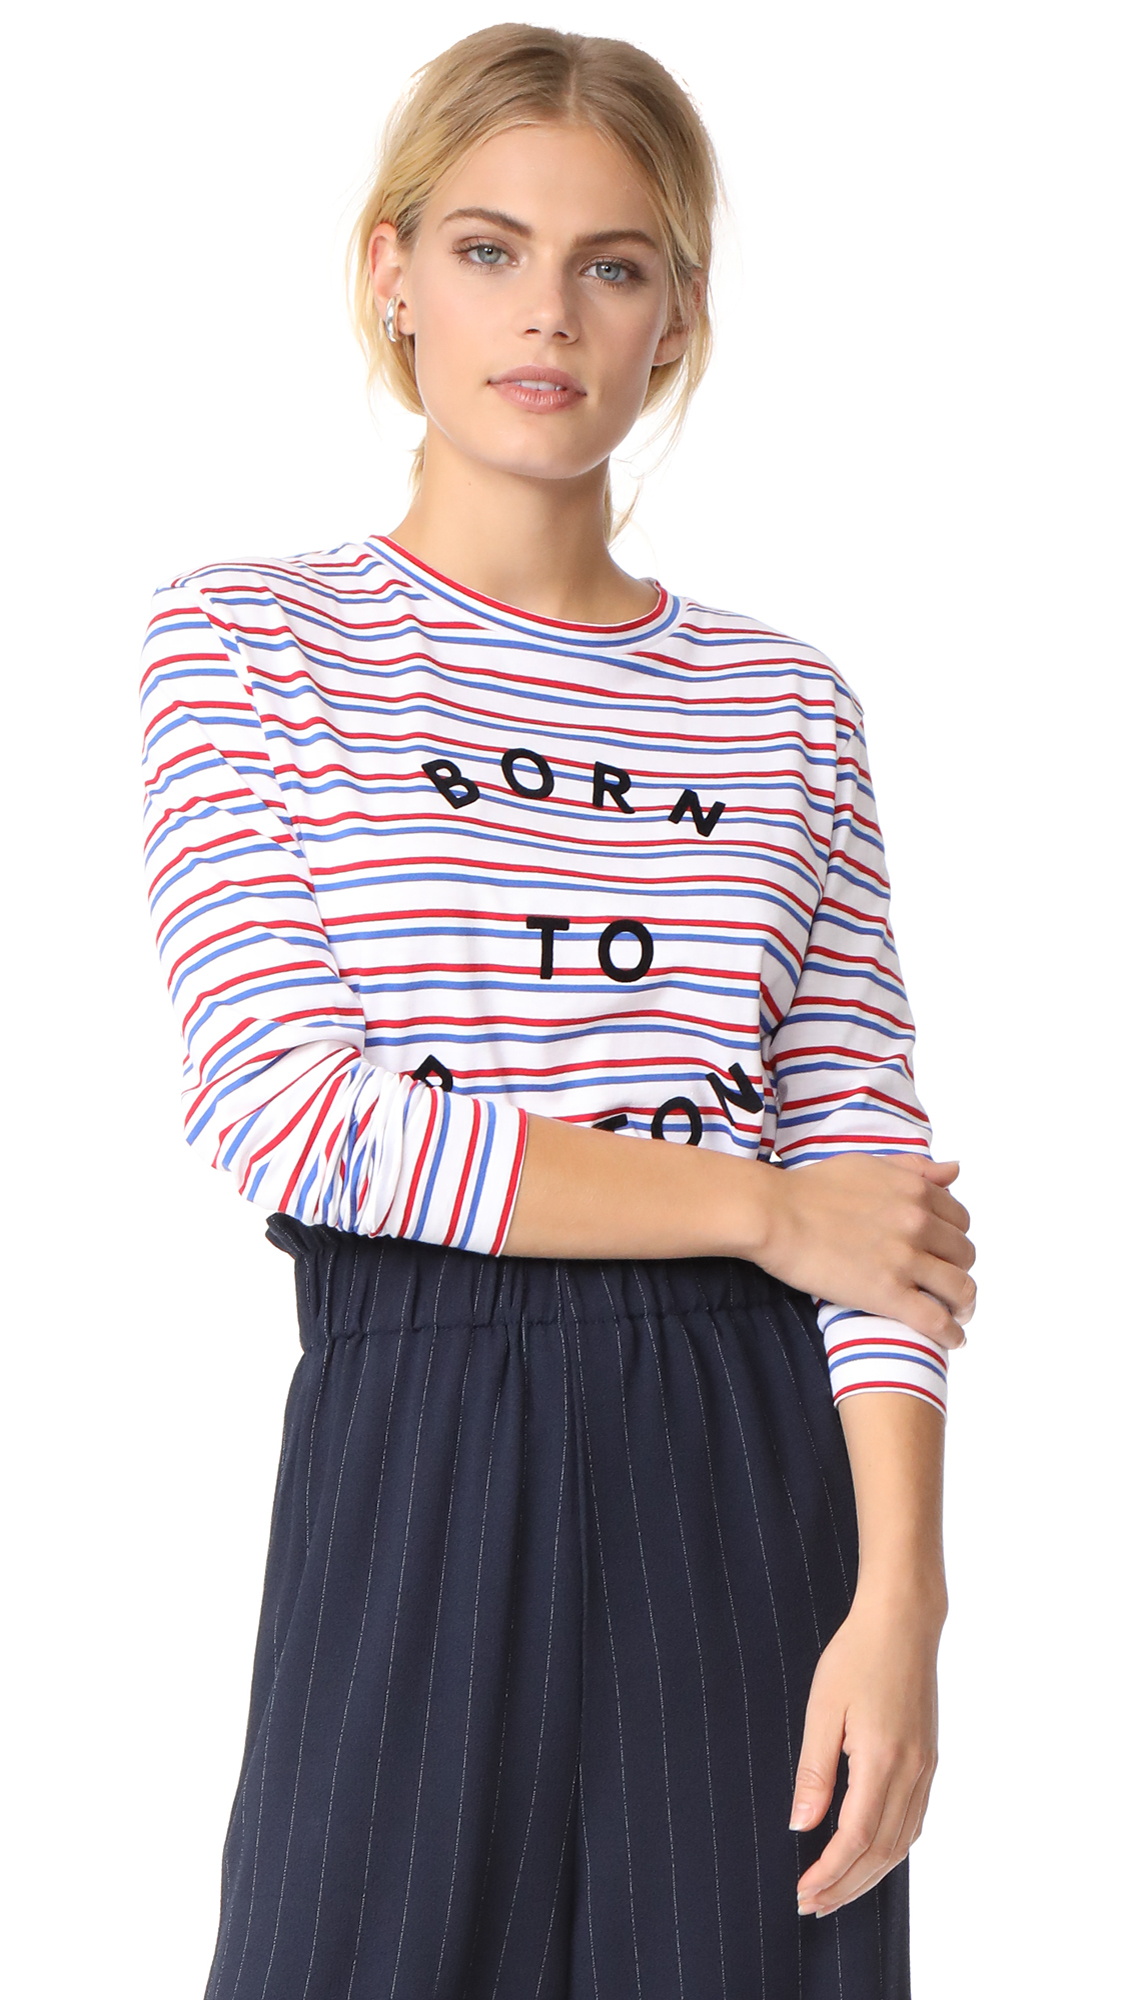 Etre Cecile Long Sleeve T-Shirt - Double Breton Stripe